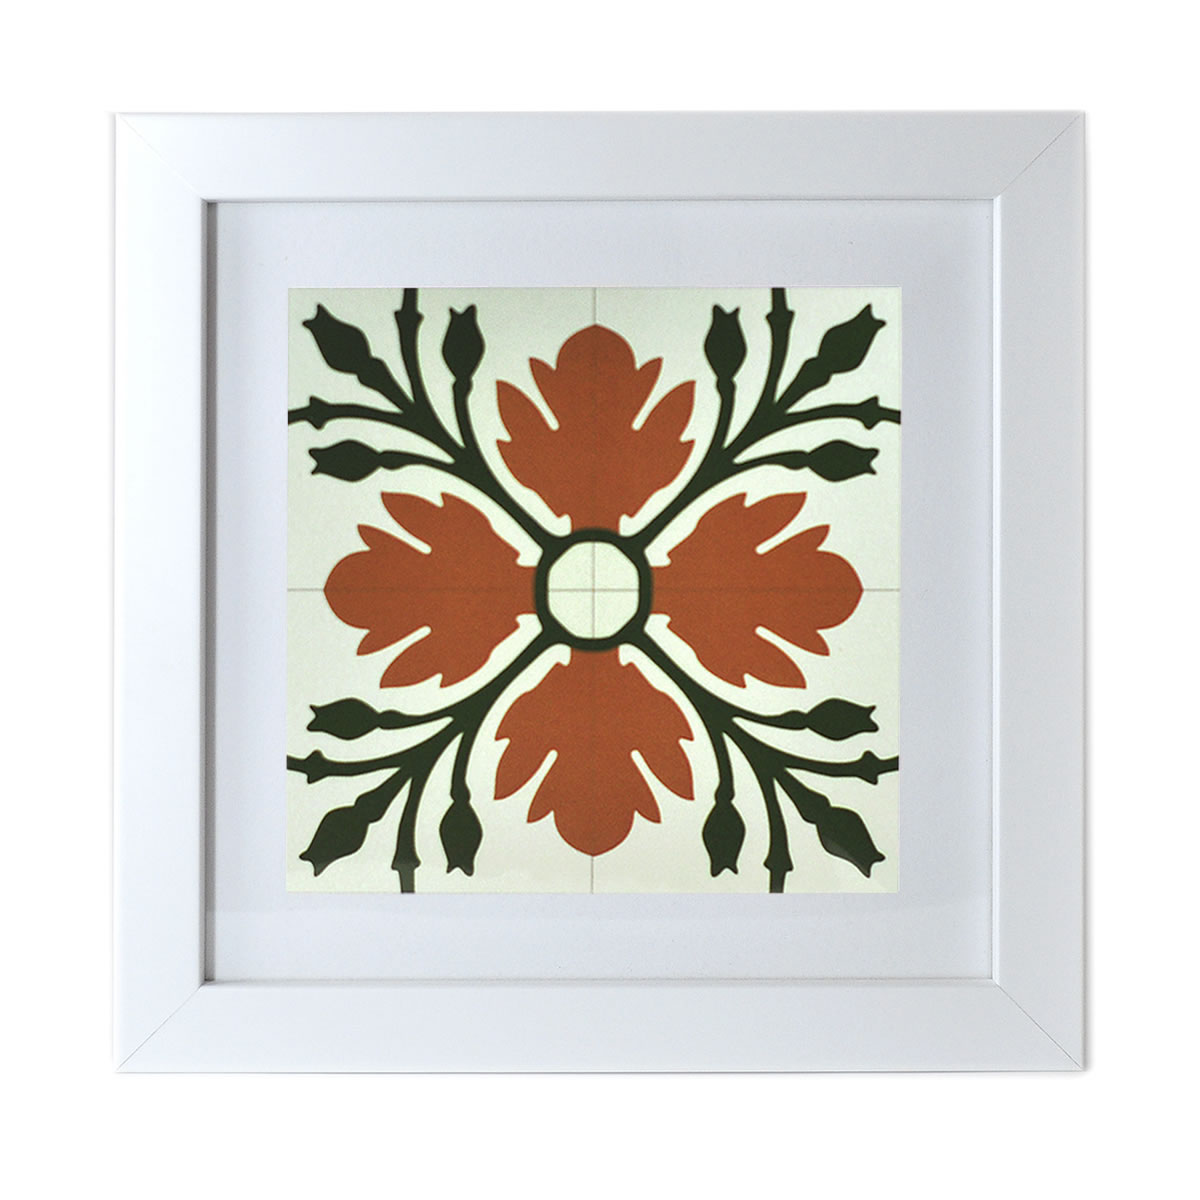 Malta Tile Print, framed, pattern no.7